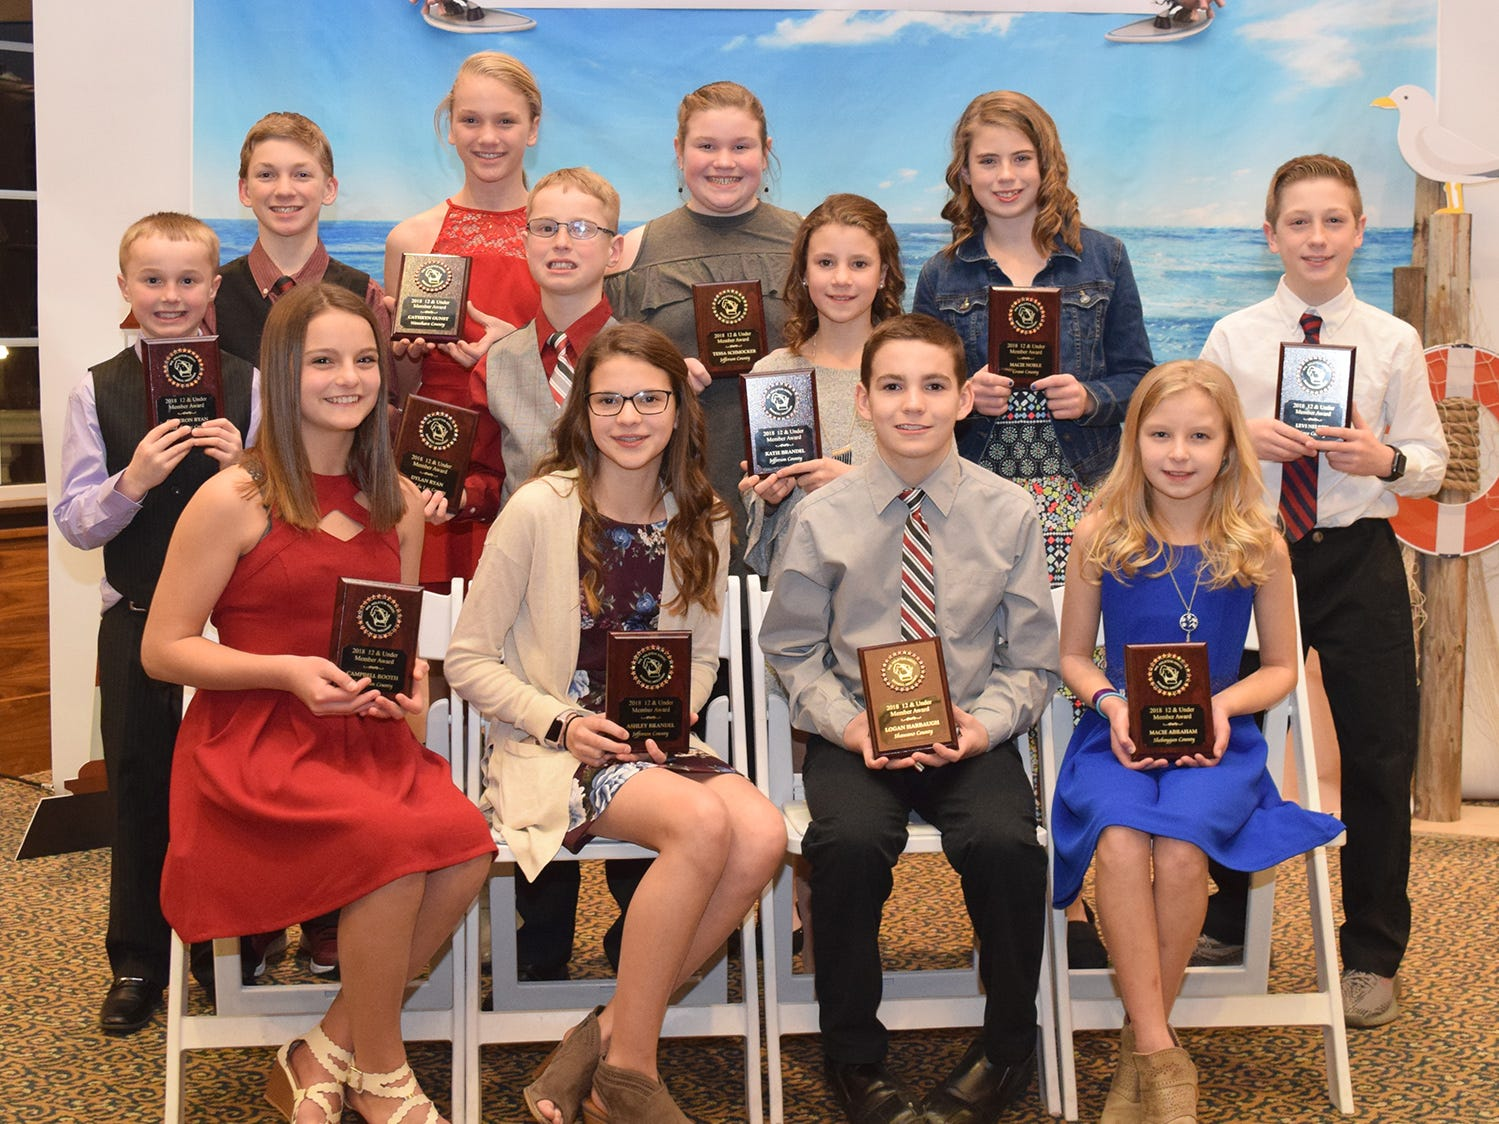 Wisconsin Junior Holstein Association members ages 12 & Under receiving recognition during the annual convention are, front row (from left) Campbell Booth, Ashley Brandel, Logan Harbaugh, and Macie Abraham. Second row (from left) Cameron Ryan, Dylan Ryan, Katie Brandel, and Levi Nelson. Back row (from left) Christopher Gunst, Cathryn Gunst, Tessa Schmocker and Macie Noble.